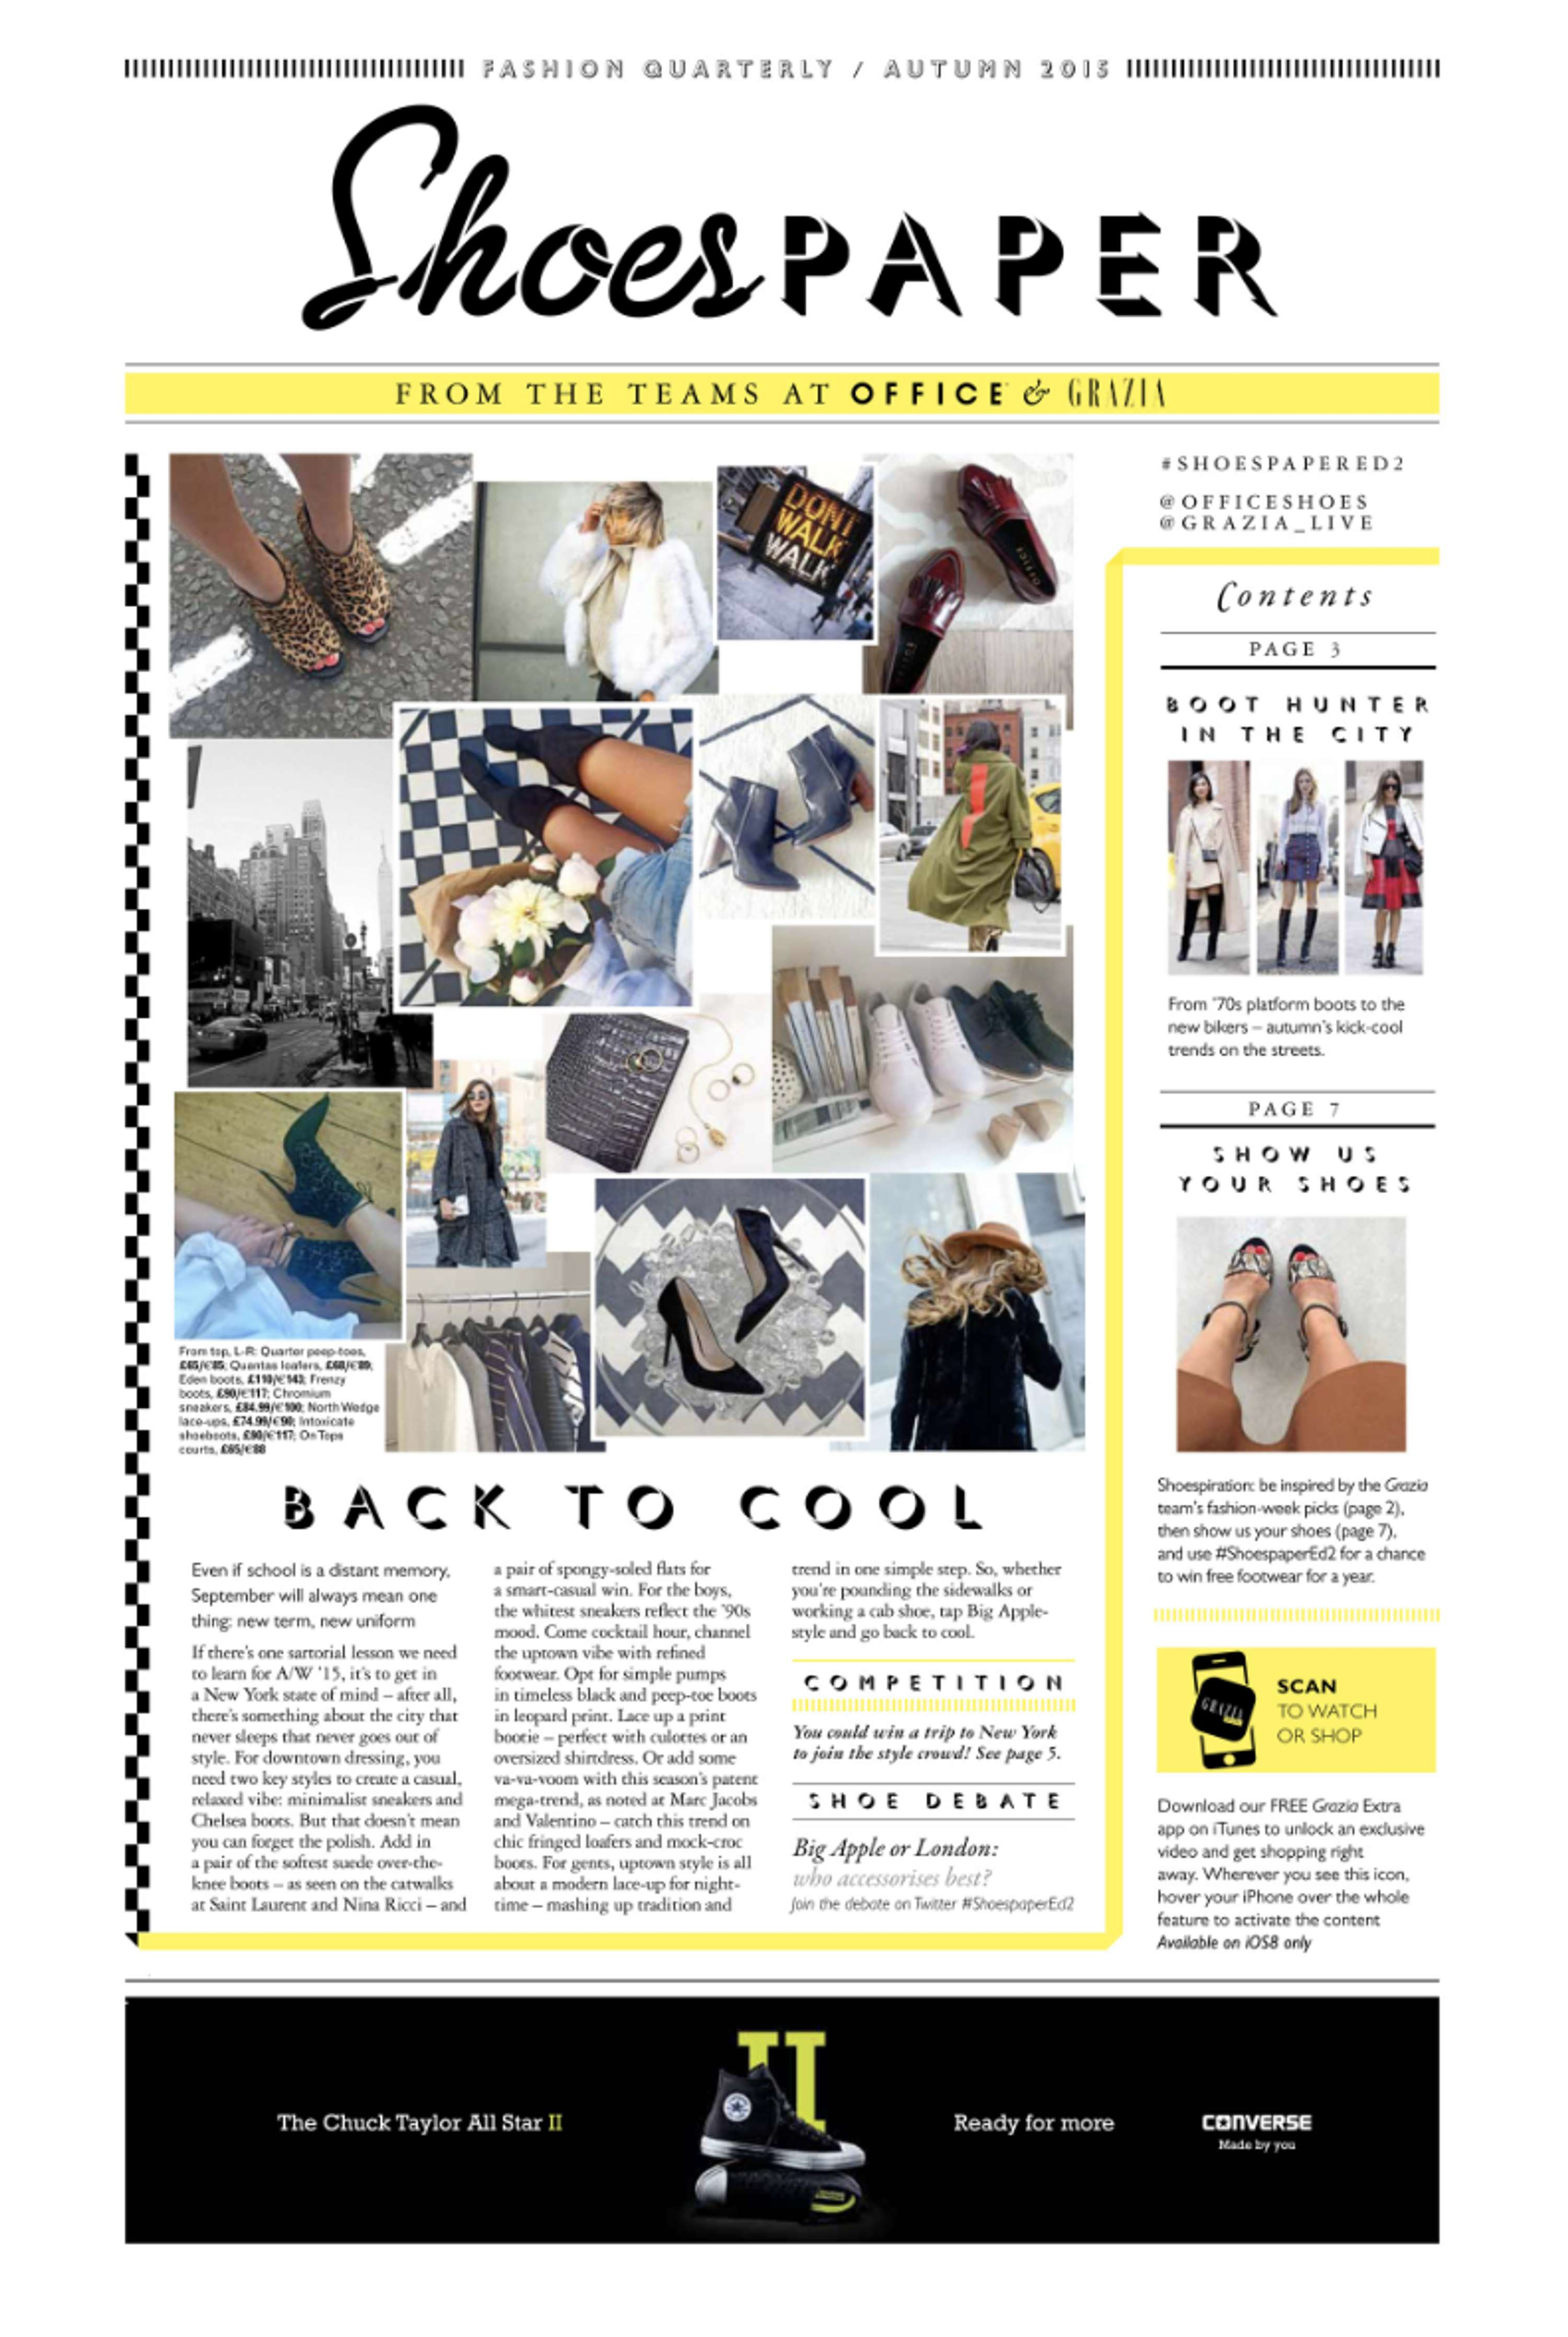 Shoespaper Grazia Office Shoes Collaboration The Dots